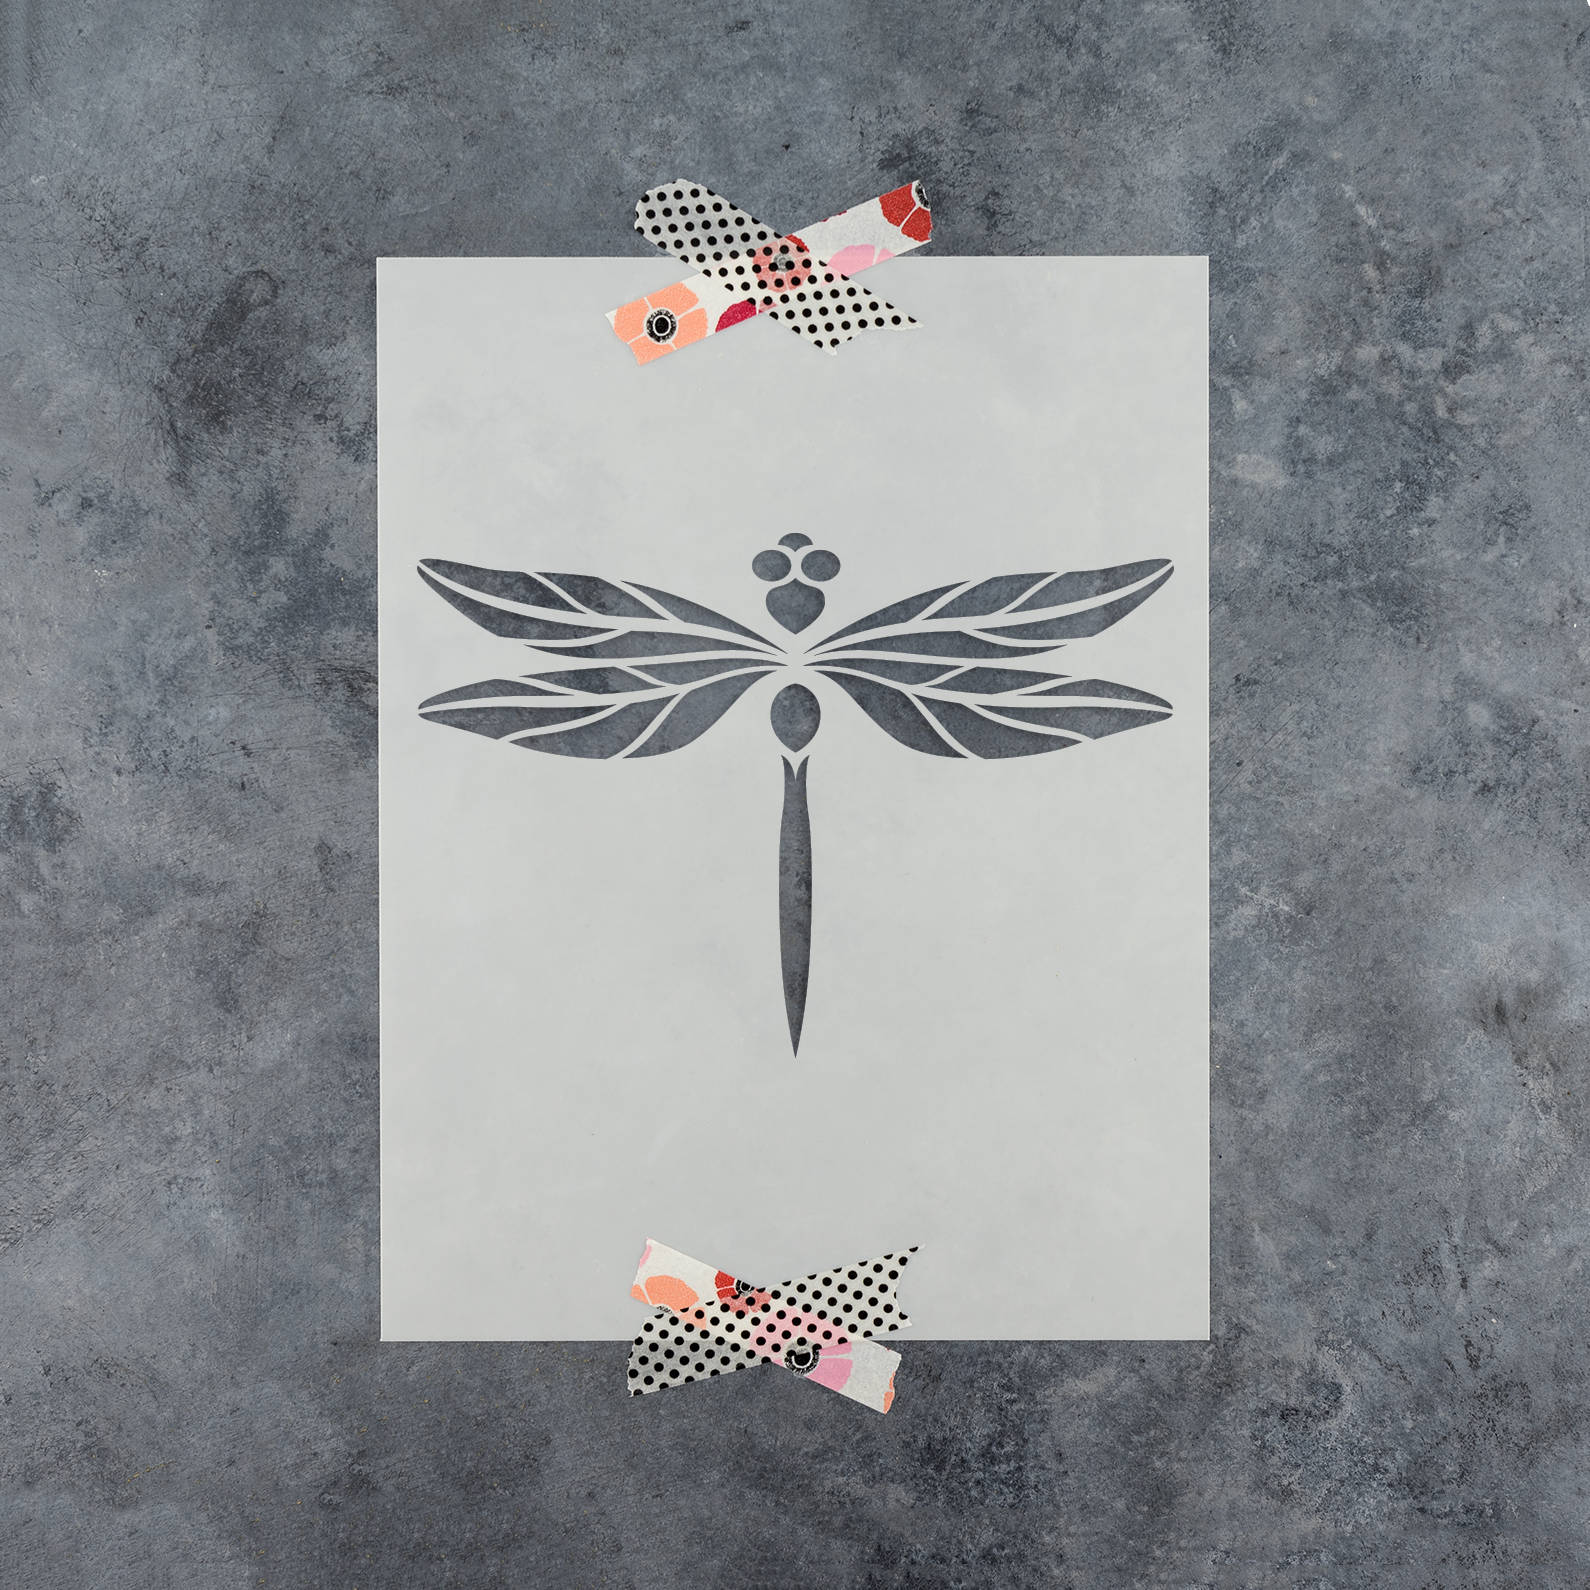 Dragonfly stencil reusable diy craft stencils of a dragonfly zoom jeuxipadfo Gallery